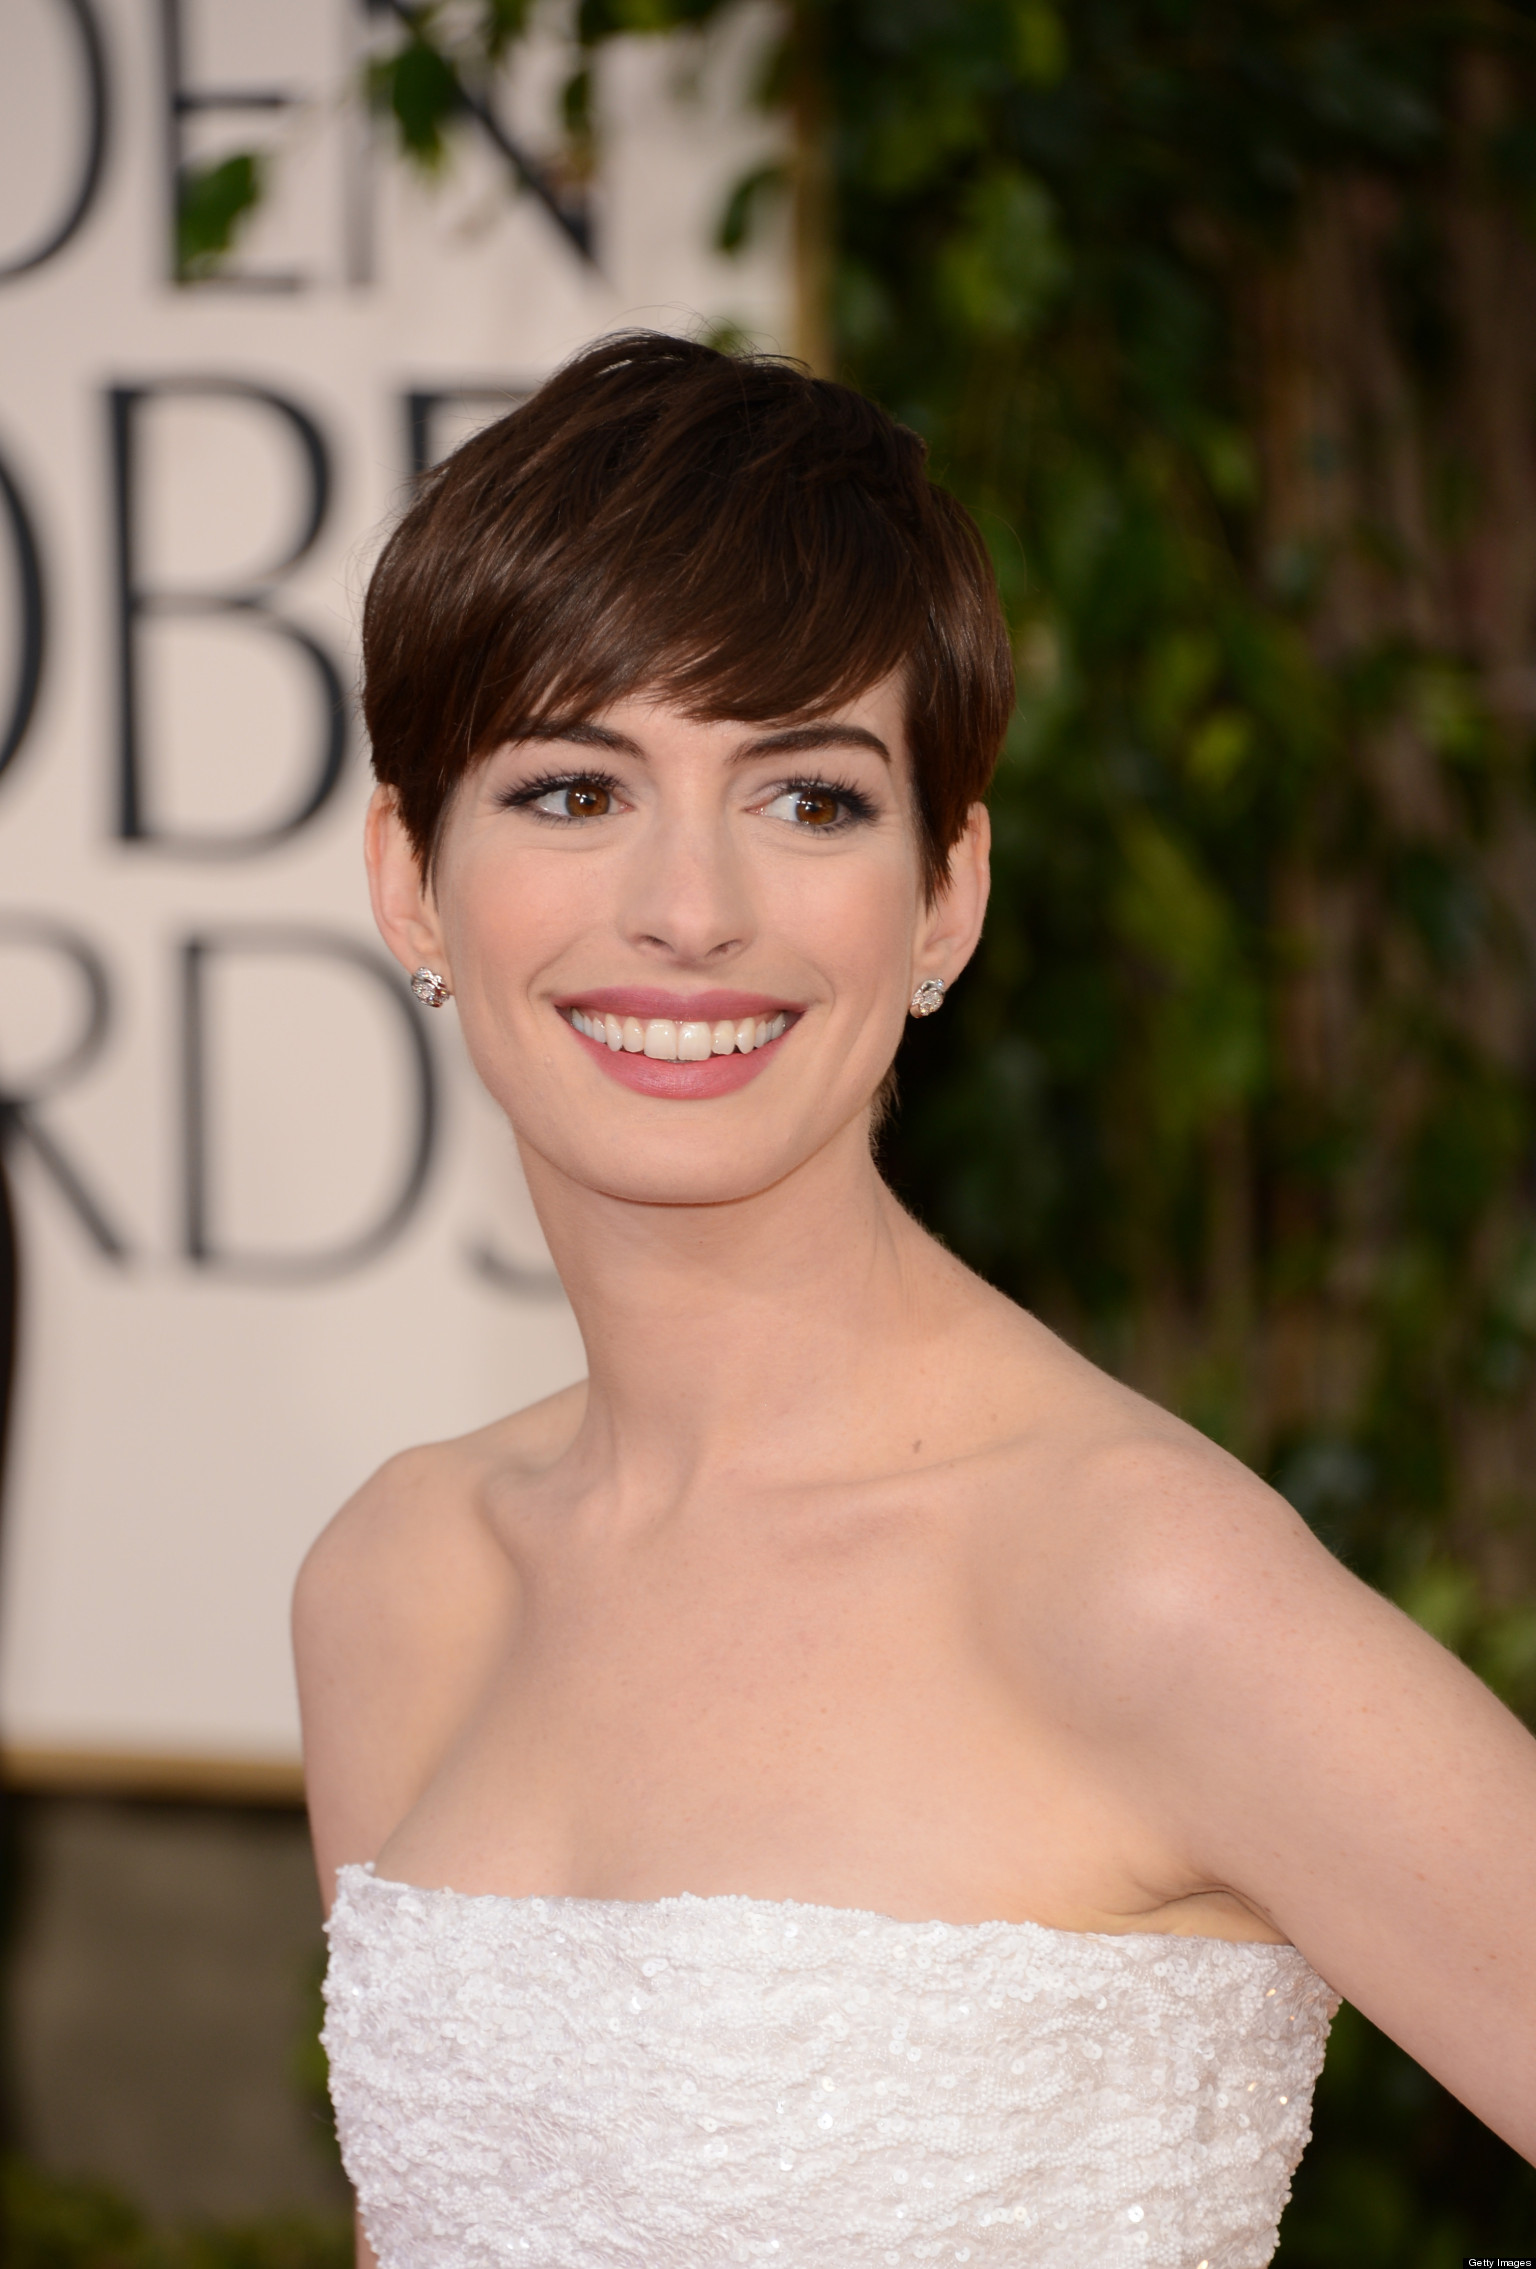 Anne Hathaway In Taming Of The Shrew Oscar Nominee